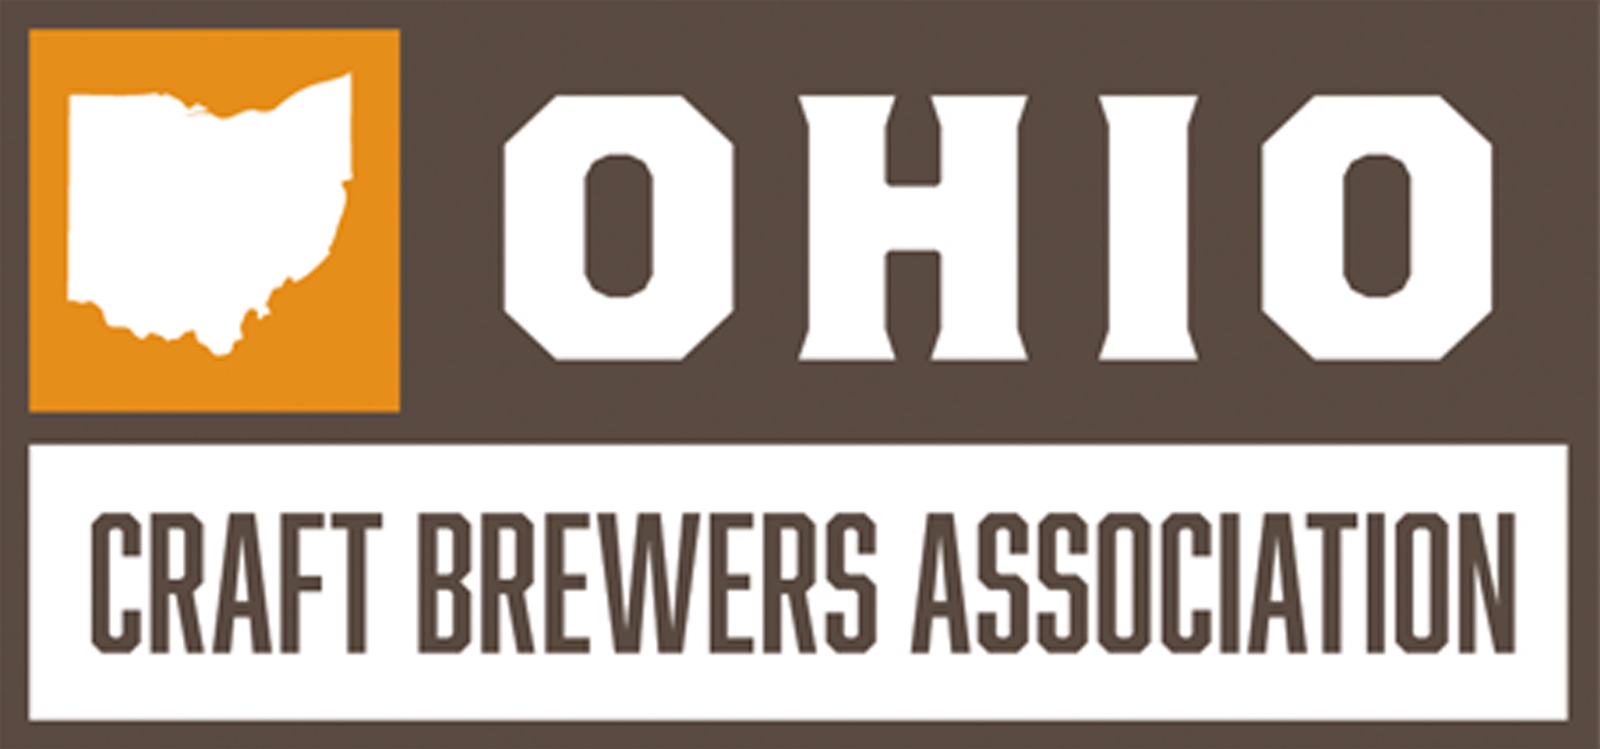 Ohio Craft Brewers Association - The Common Beer Company